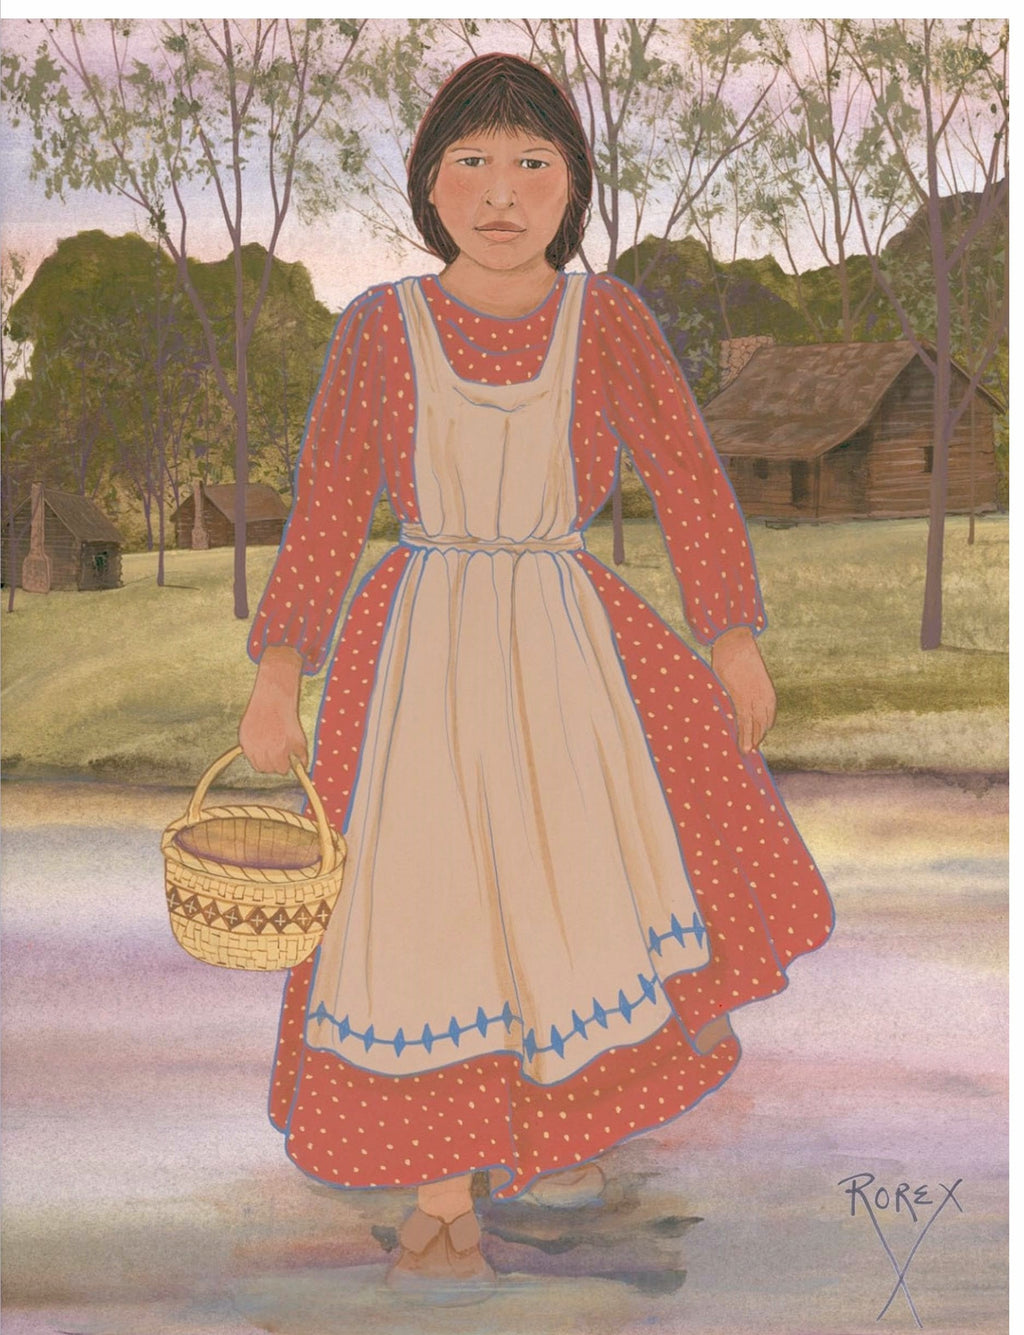 CHOCTAW GIRL CROSSING RIVER